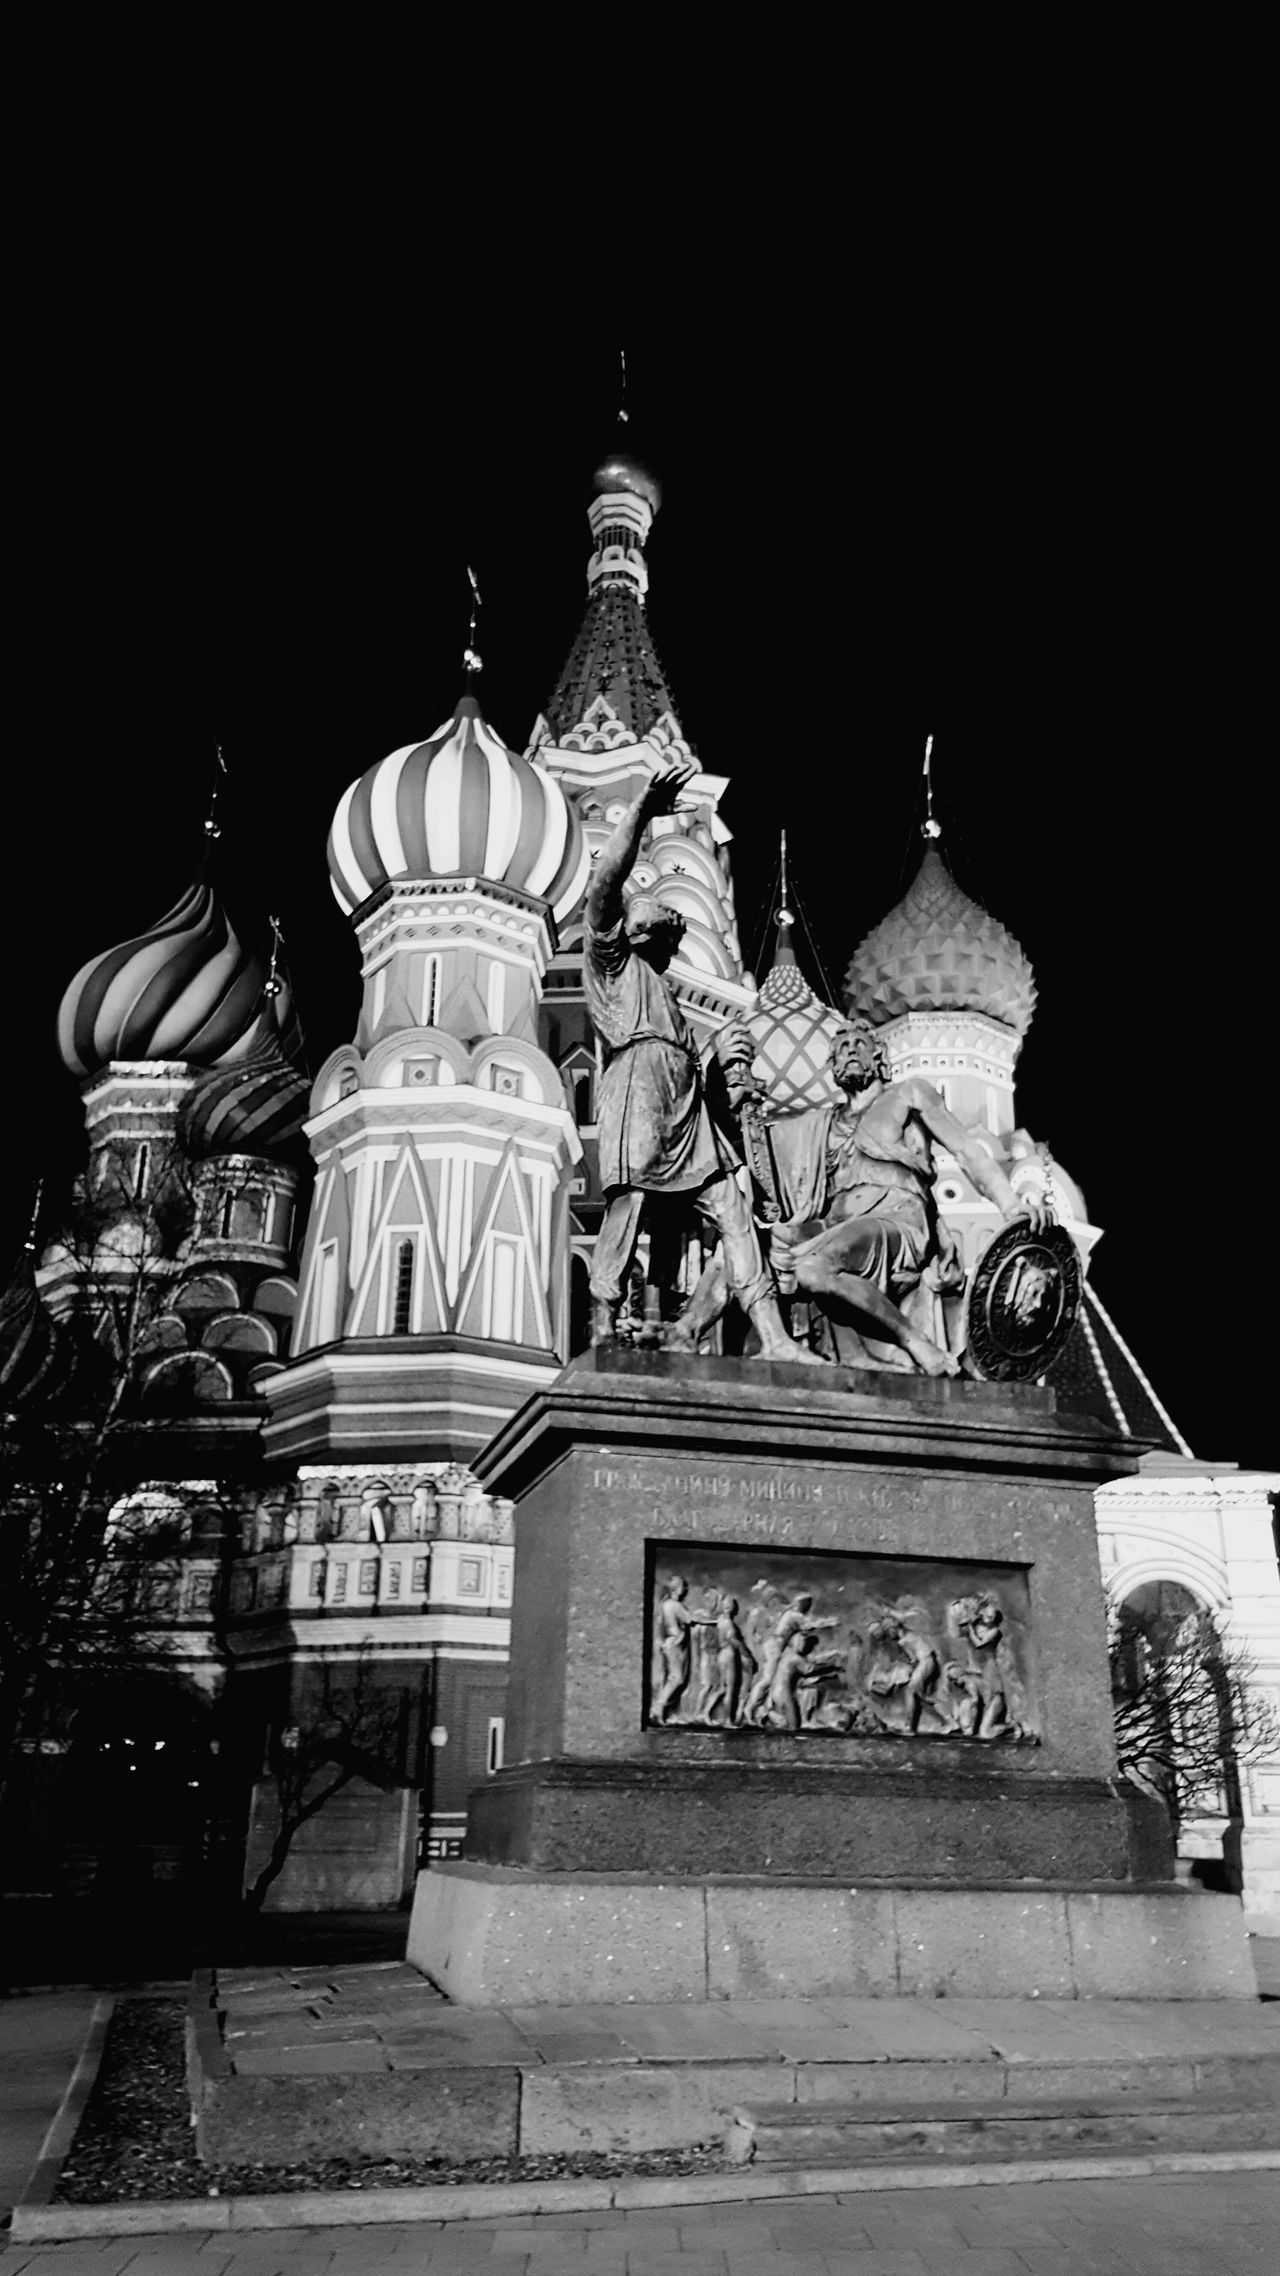 Dome Travel Destinations Religion Place Of Worship Architecture No People Night Kremlin Night Photography Church Red Square Russia Moscow Red Square Moscow St. Basil's Cathedral St. Basil's Cathedral In Moscow Kremlin Architecture Russia Black And White Photography Blackandwhite Photography Building Exterior Place Of Worship Ortodox Church Cultures Illuminated Nightphotography